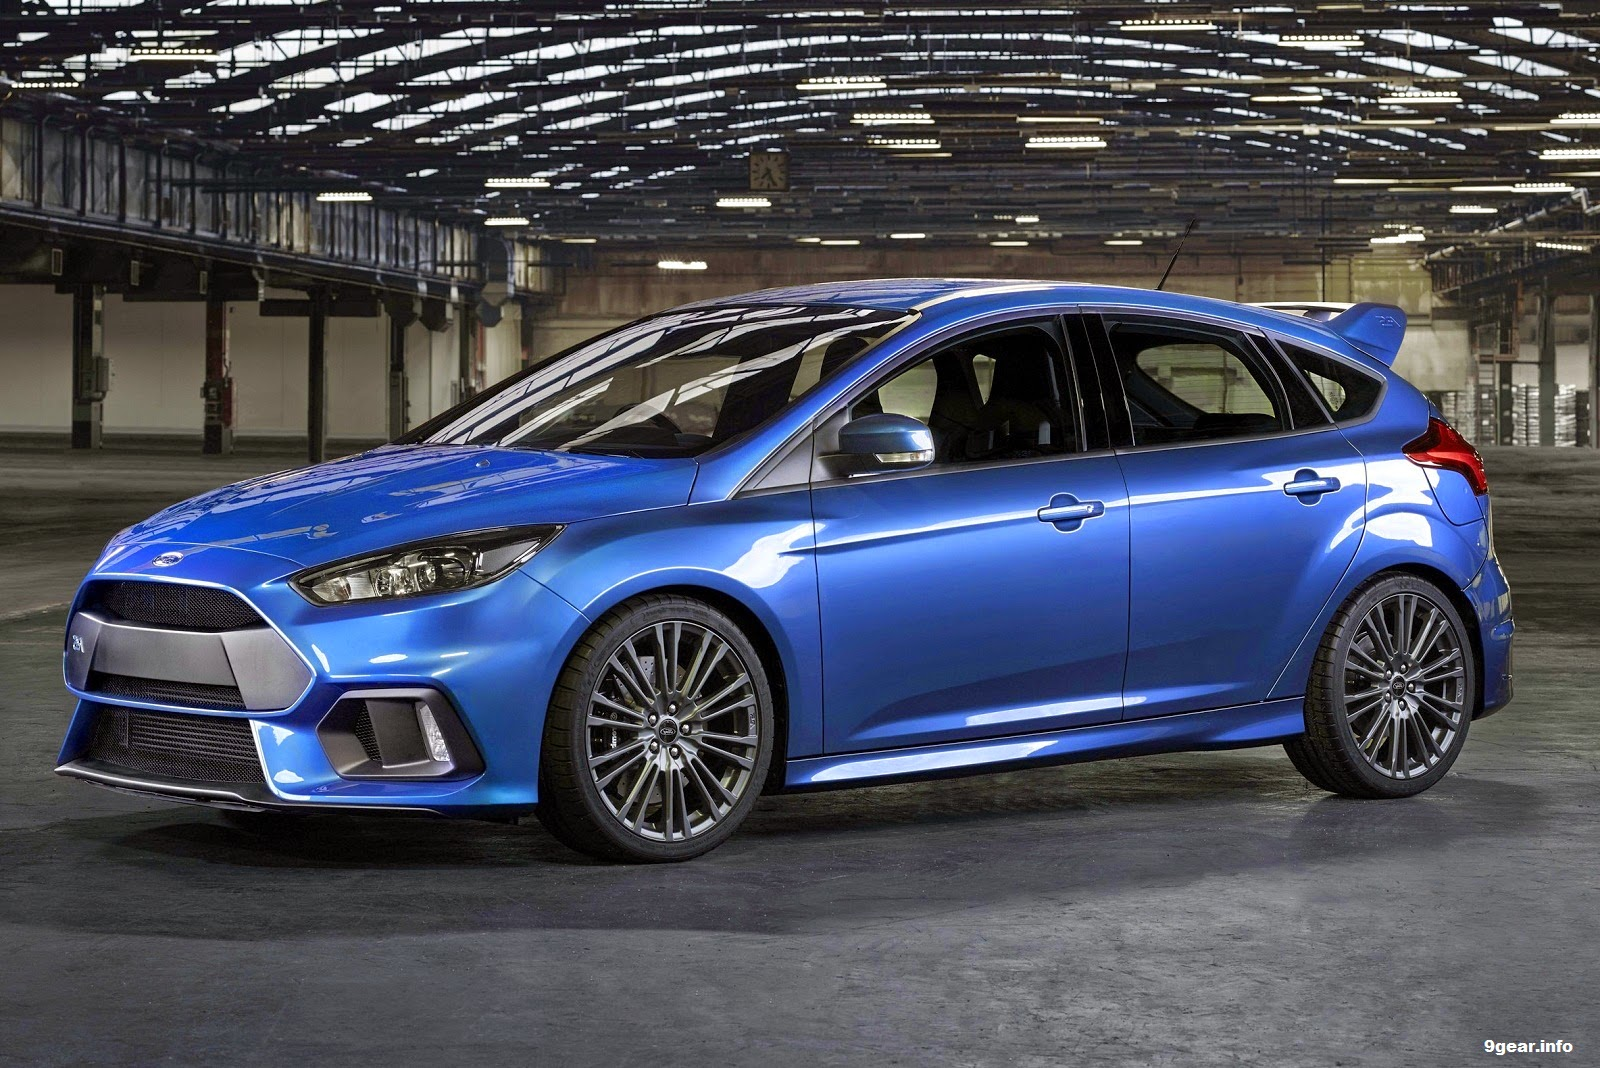 316 hp awd monster hatch 2016 ford focus rs car reviews new car pictures for 2018 2019. Black Bedroom Furniture Sets. Home Design Ideas